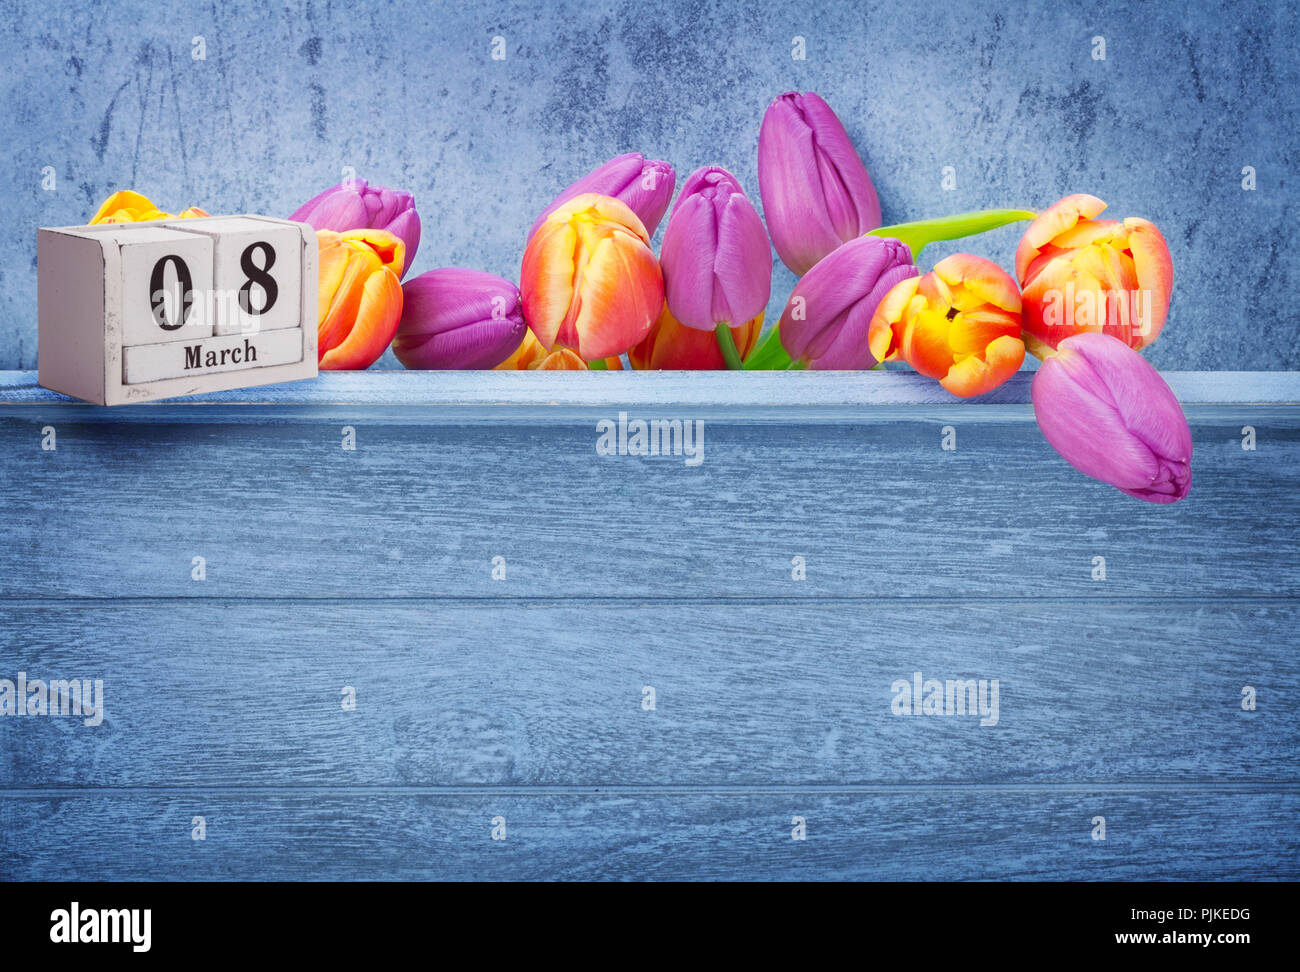 Women's Day, March 8, greeting card with pink tulips and calendar - Stock Image